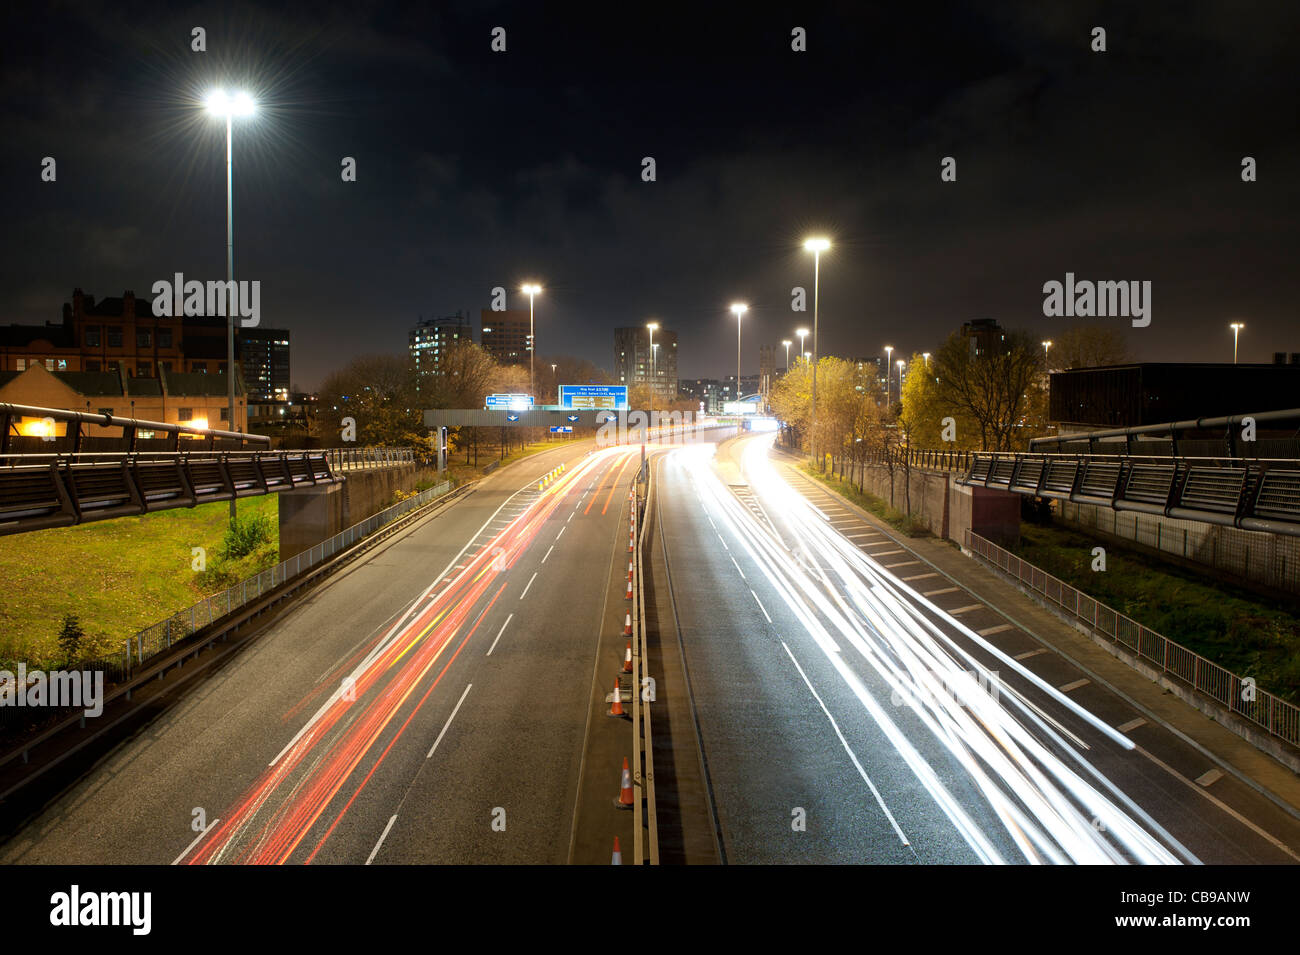 An evening shot of the A57(M) Manunian Way near to Hulme, Manchester. With long shutter light trails. - Stock Image